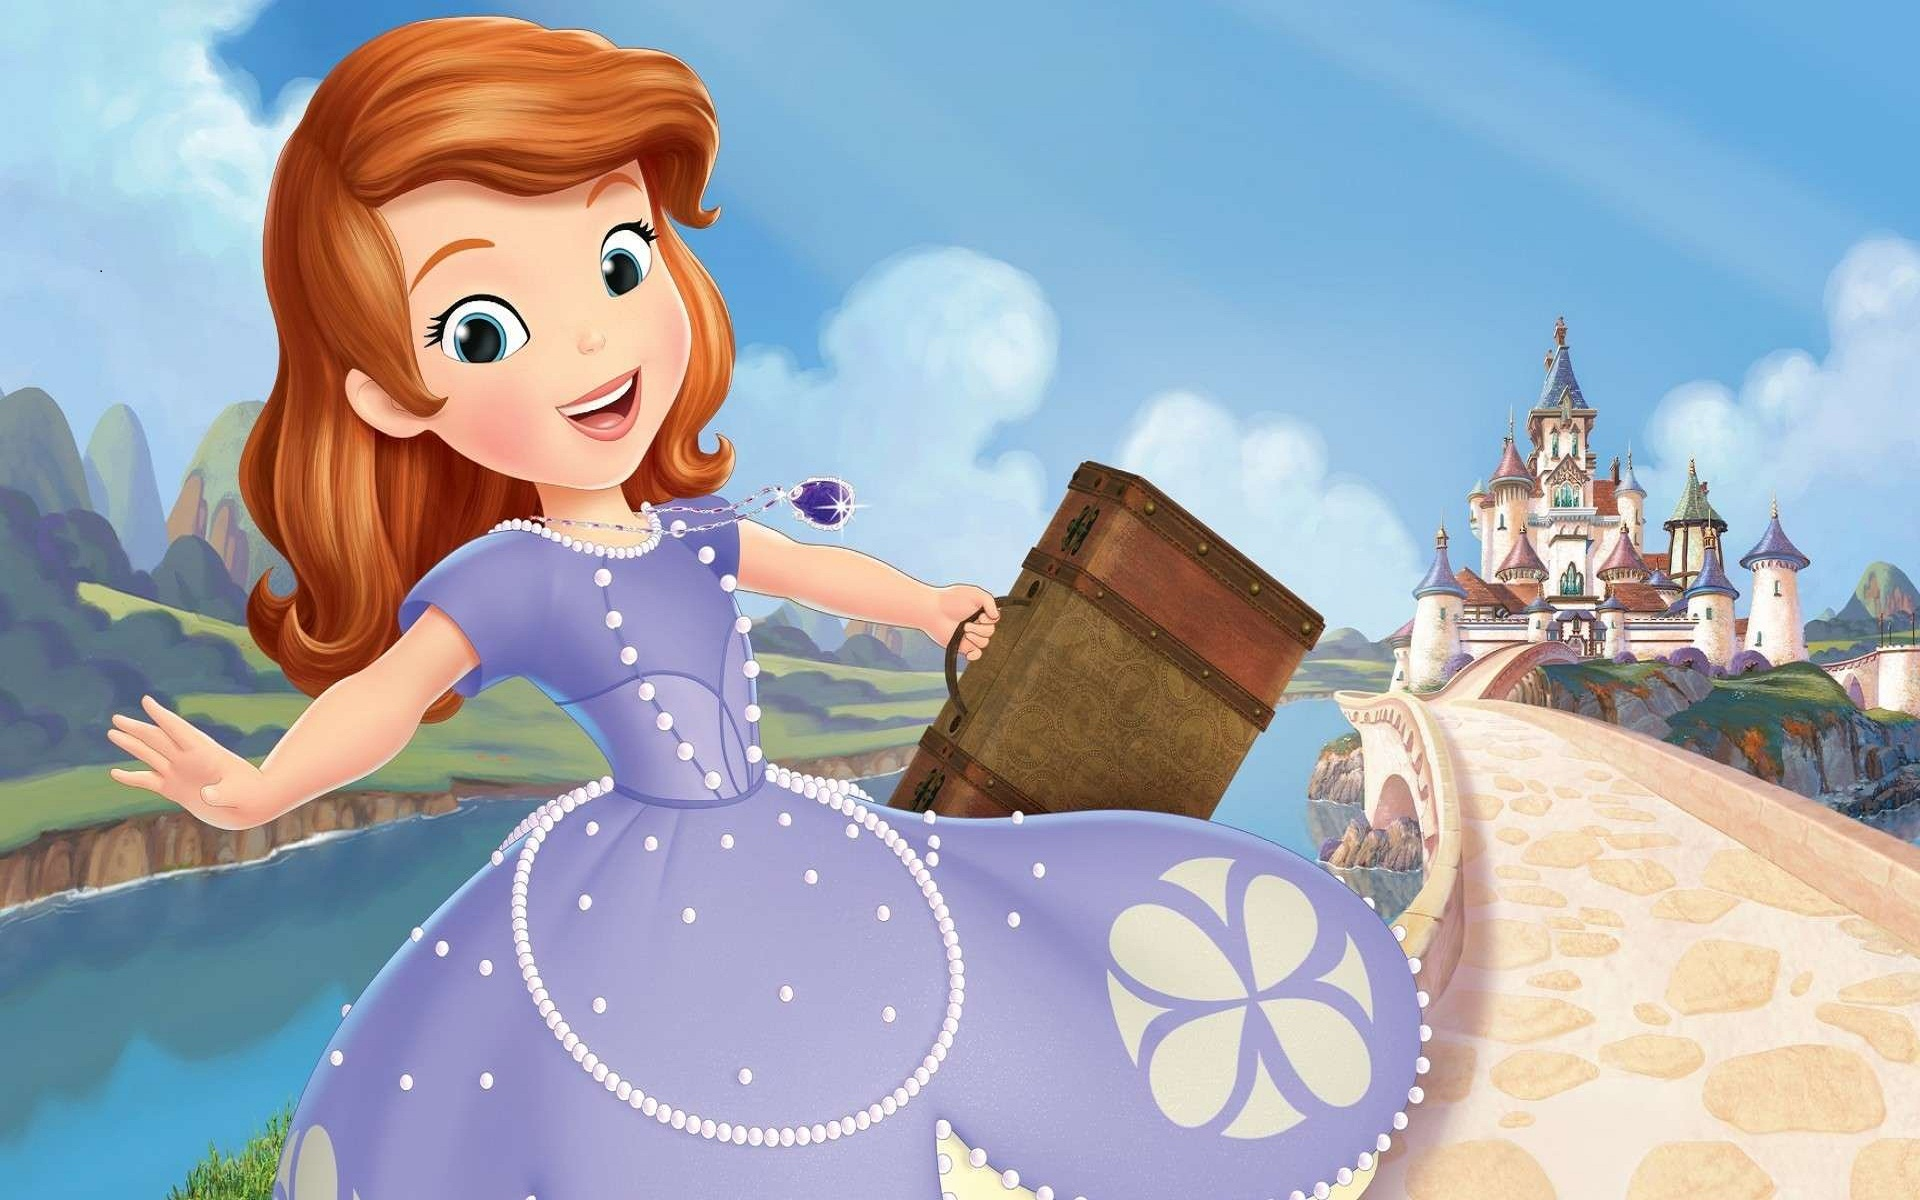 Sofia The First Once Upon A Princess Wallpapers High